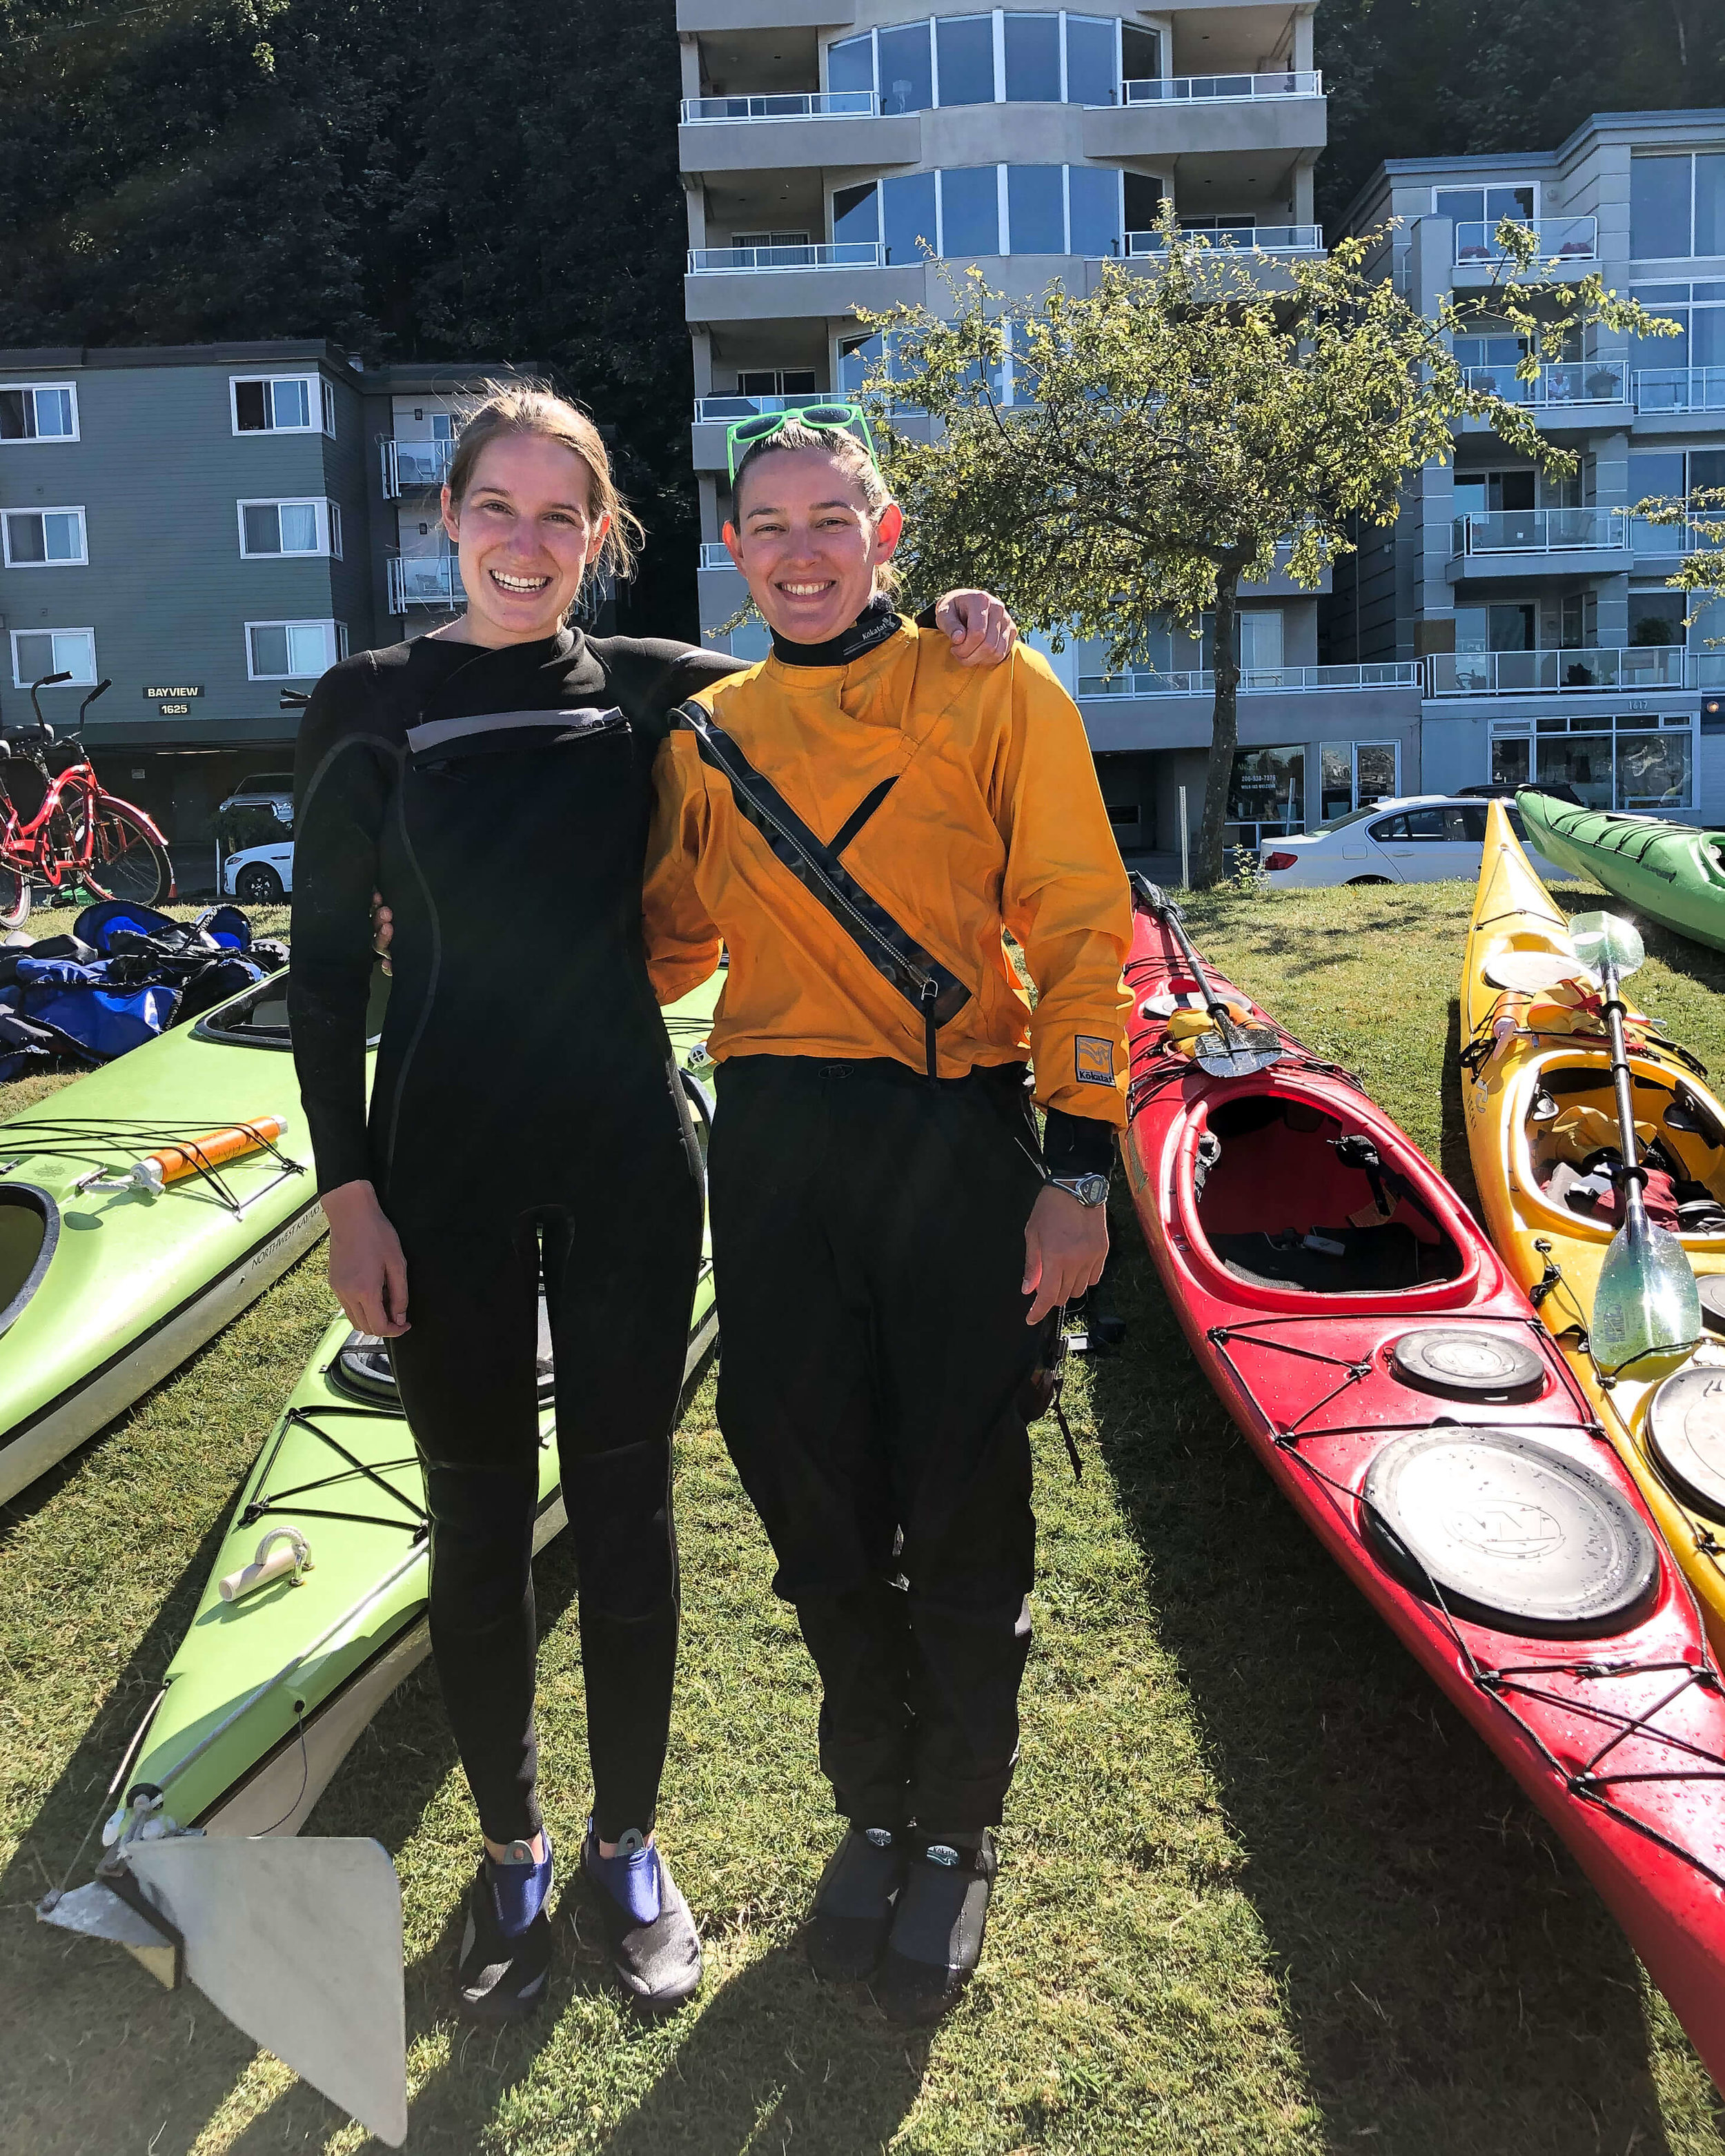 My kayaking instructor and I outside of Alki Kayak Tours